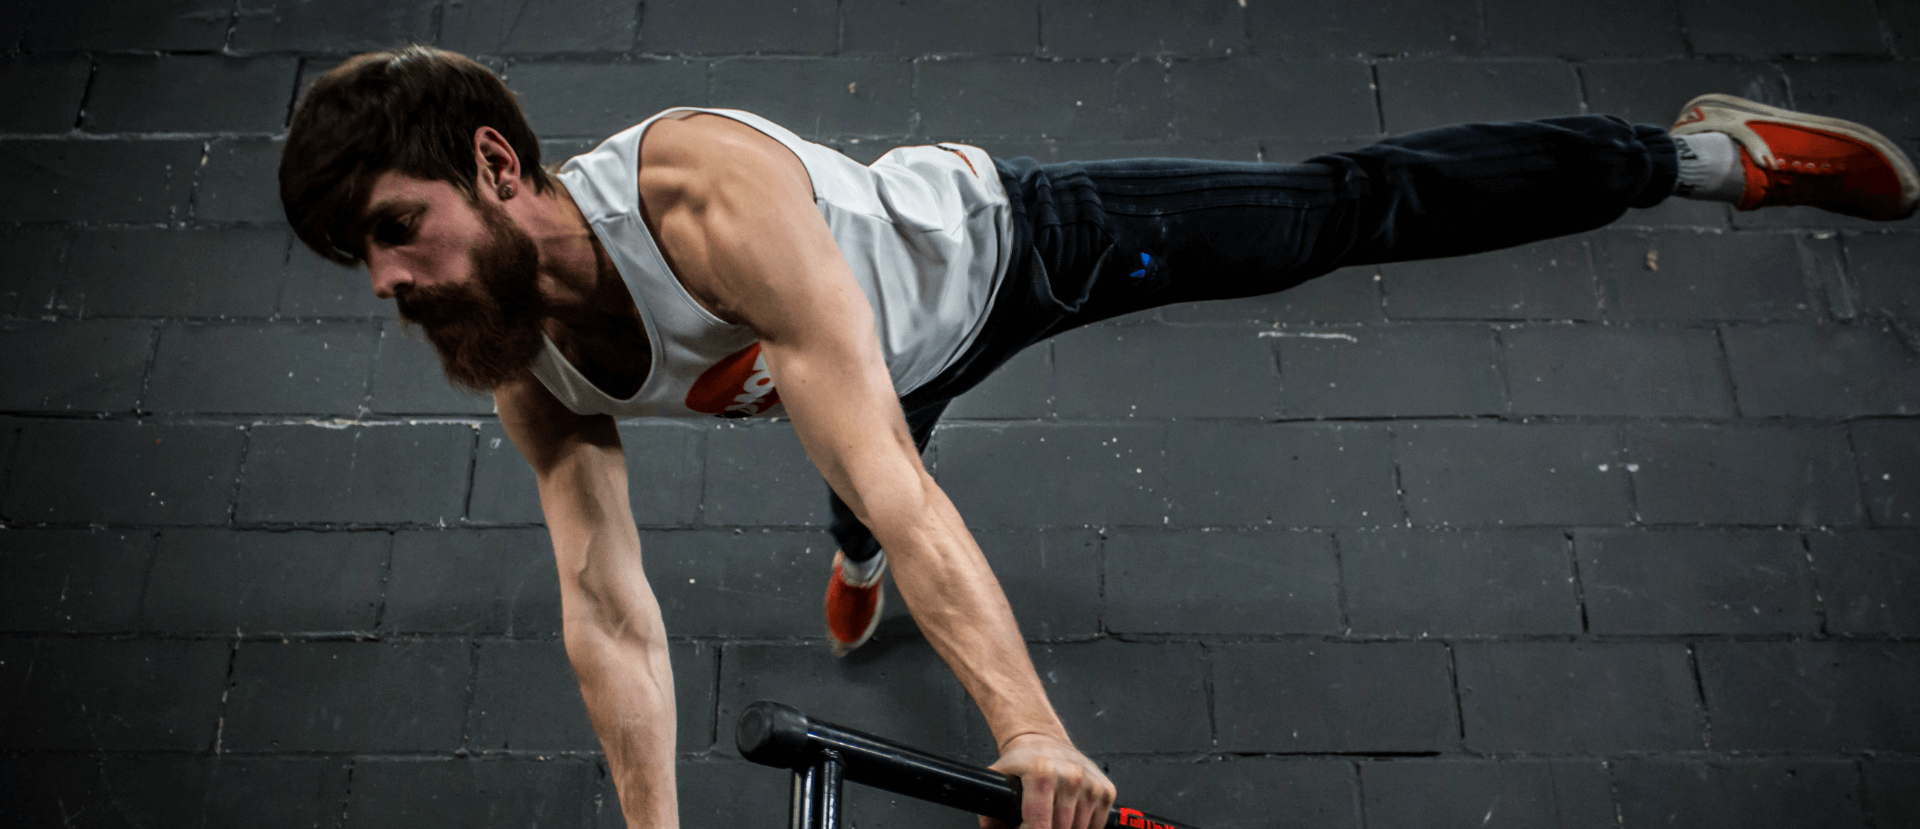 Beginner to Pro Parallel Bar Exercises | Pull Up Mate - Pull